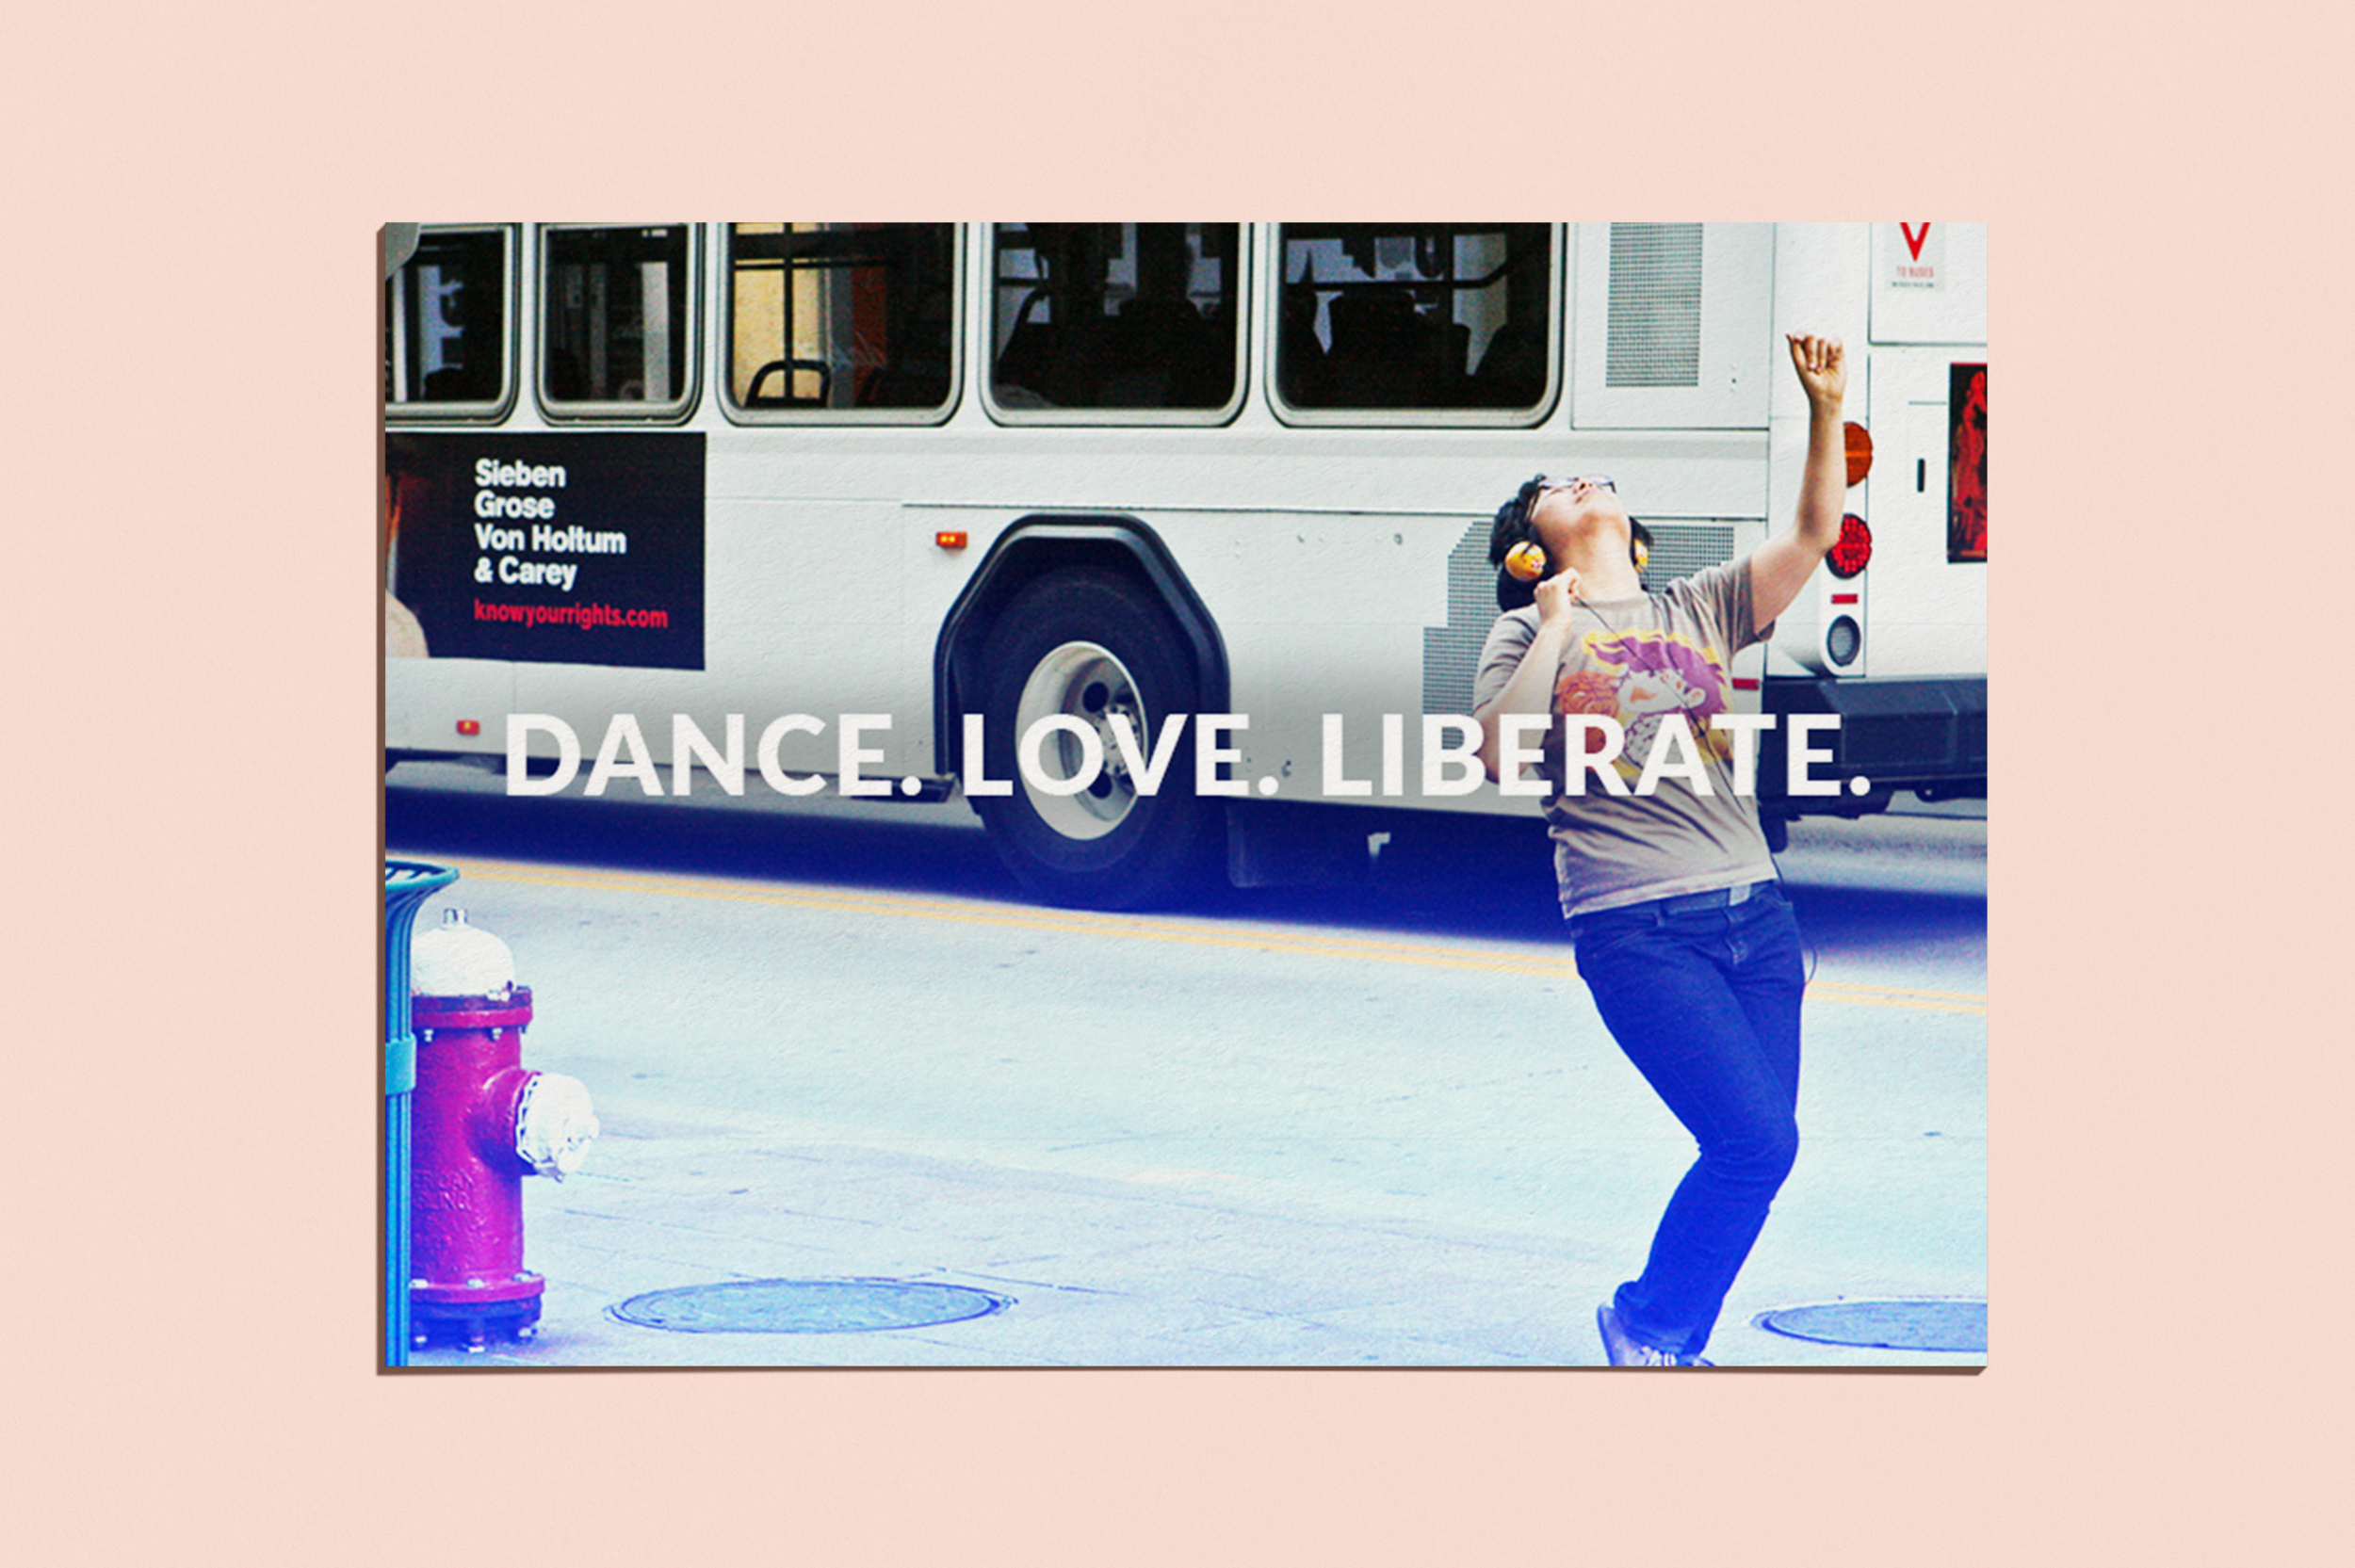 dance love lib.png